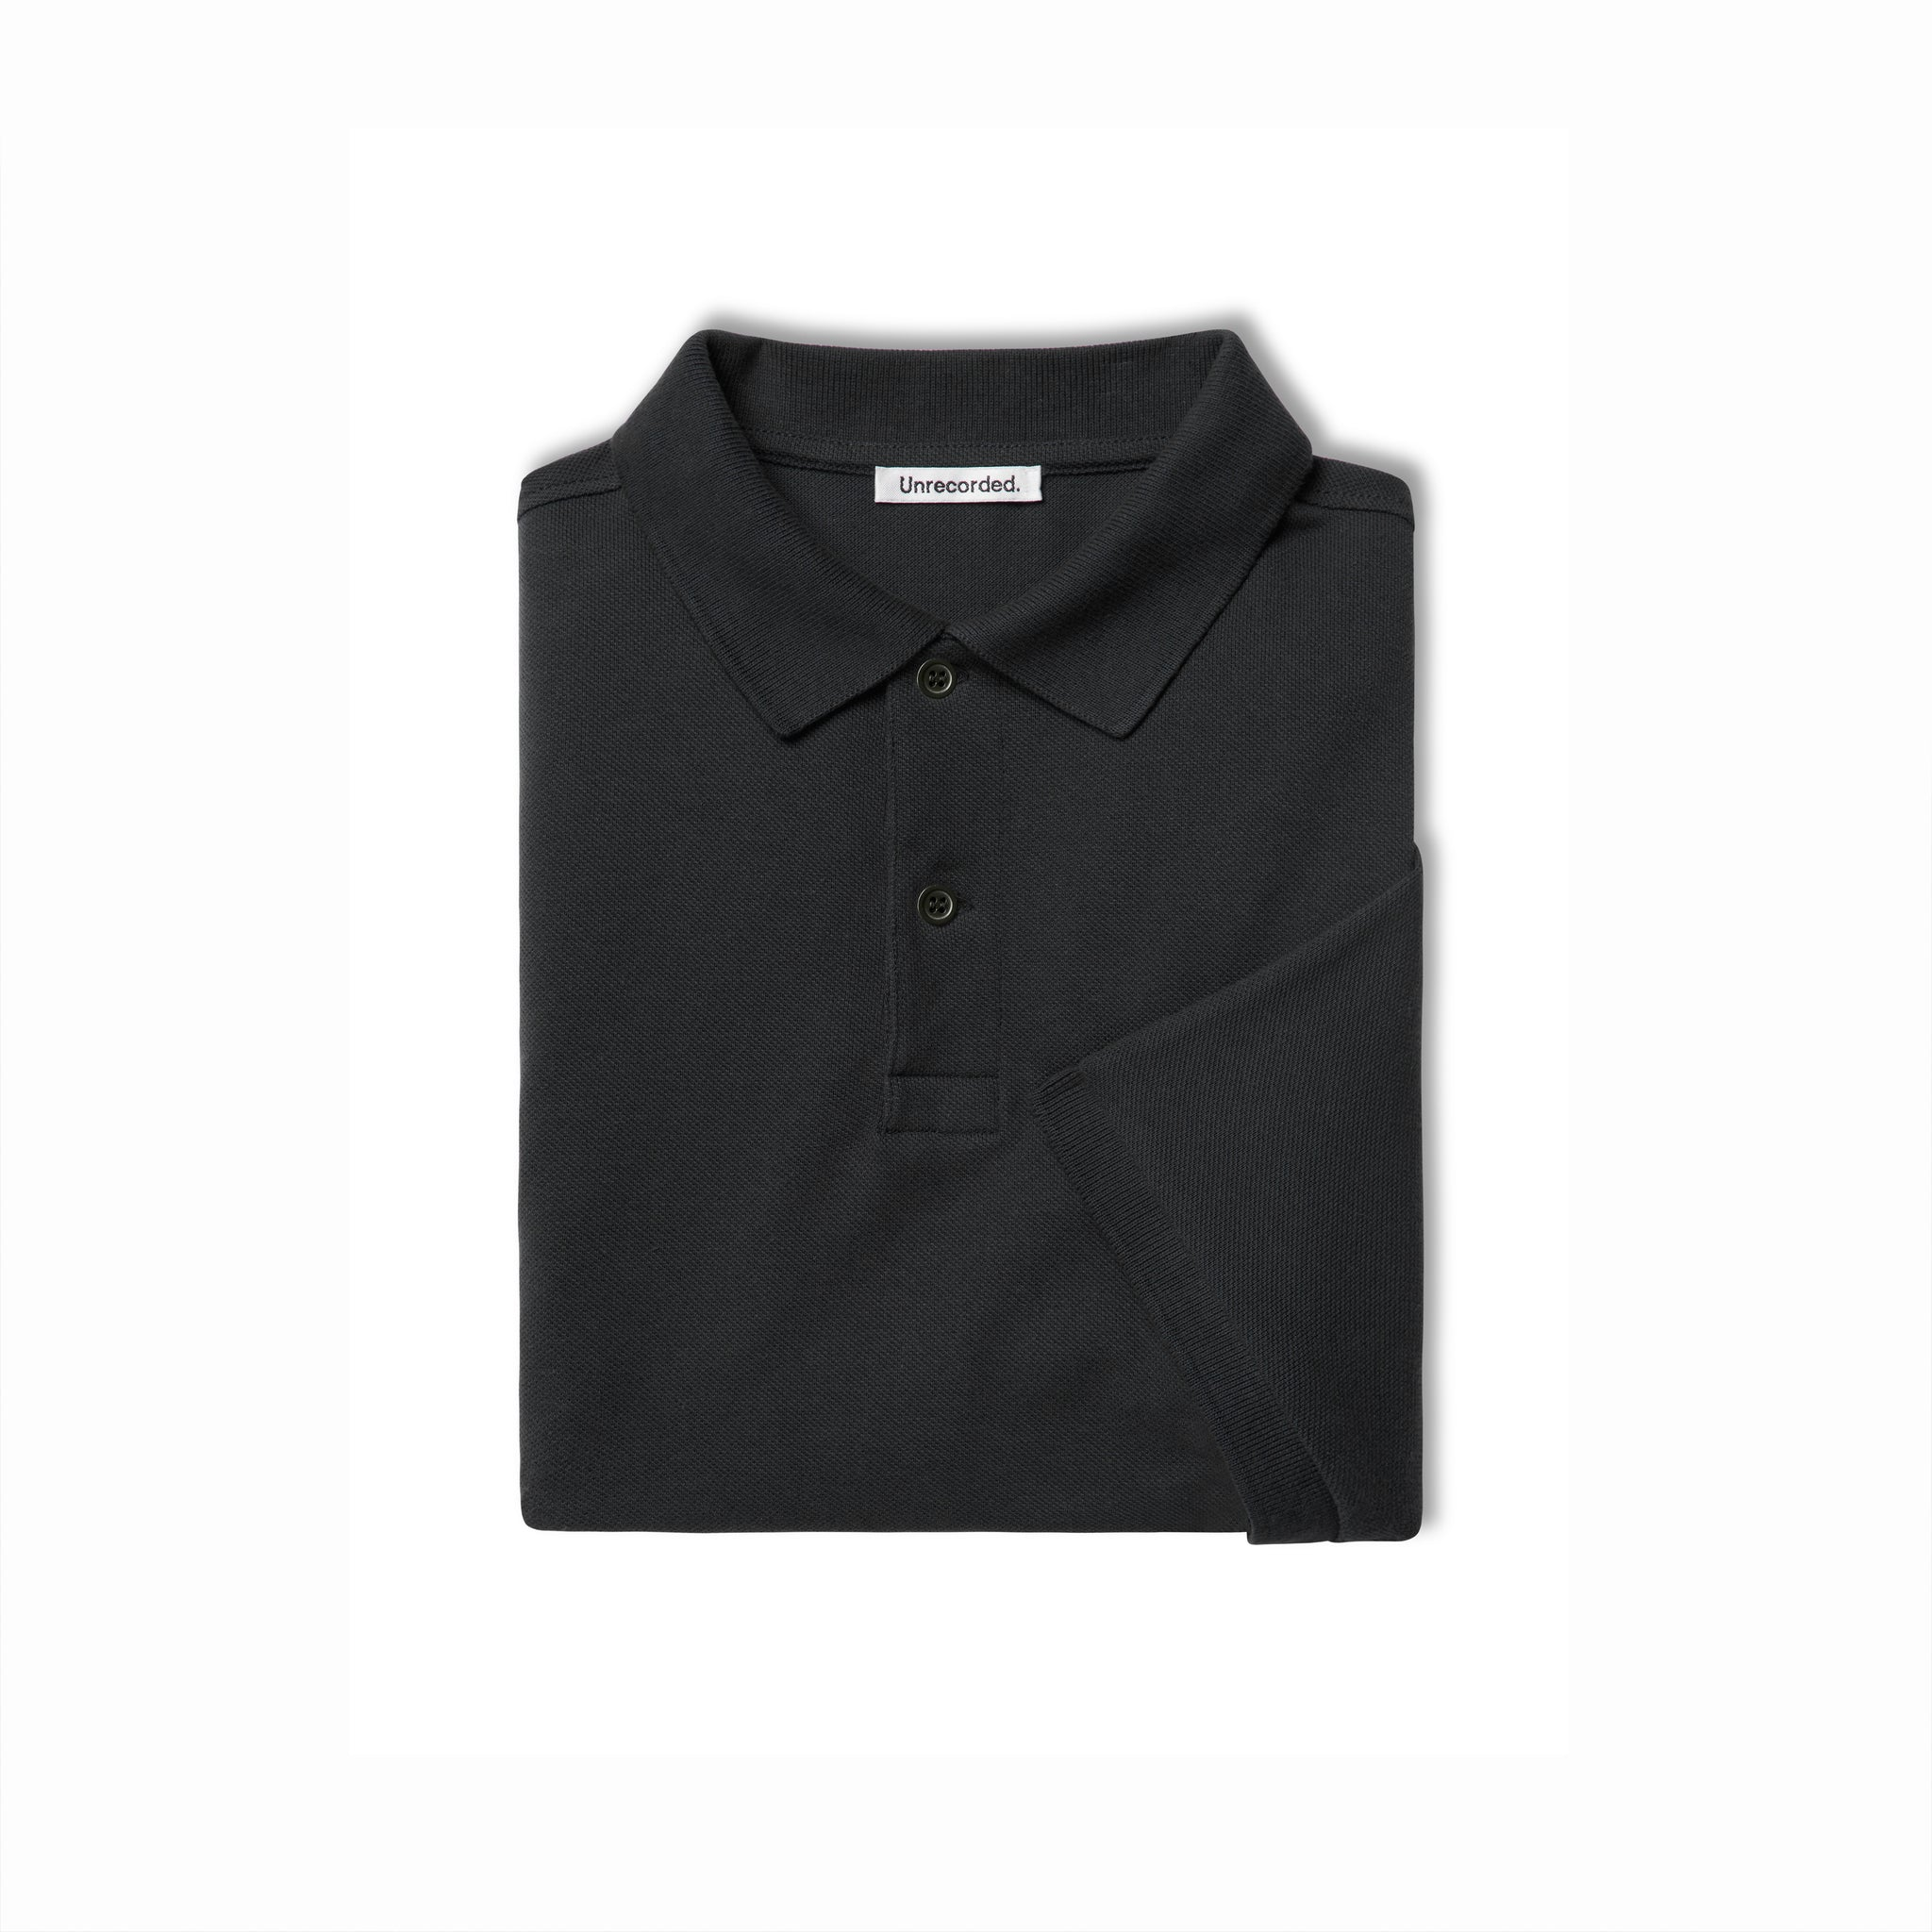 Pique Polo in Black made from organic cotton